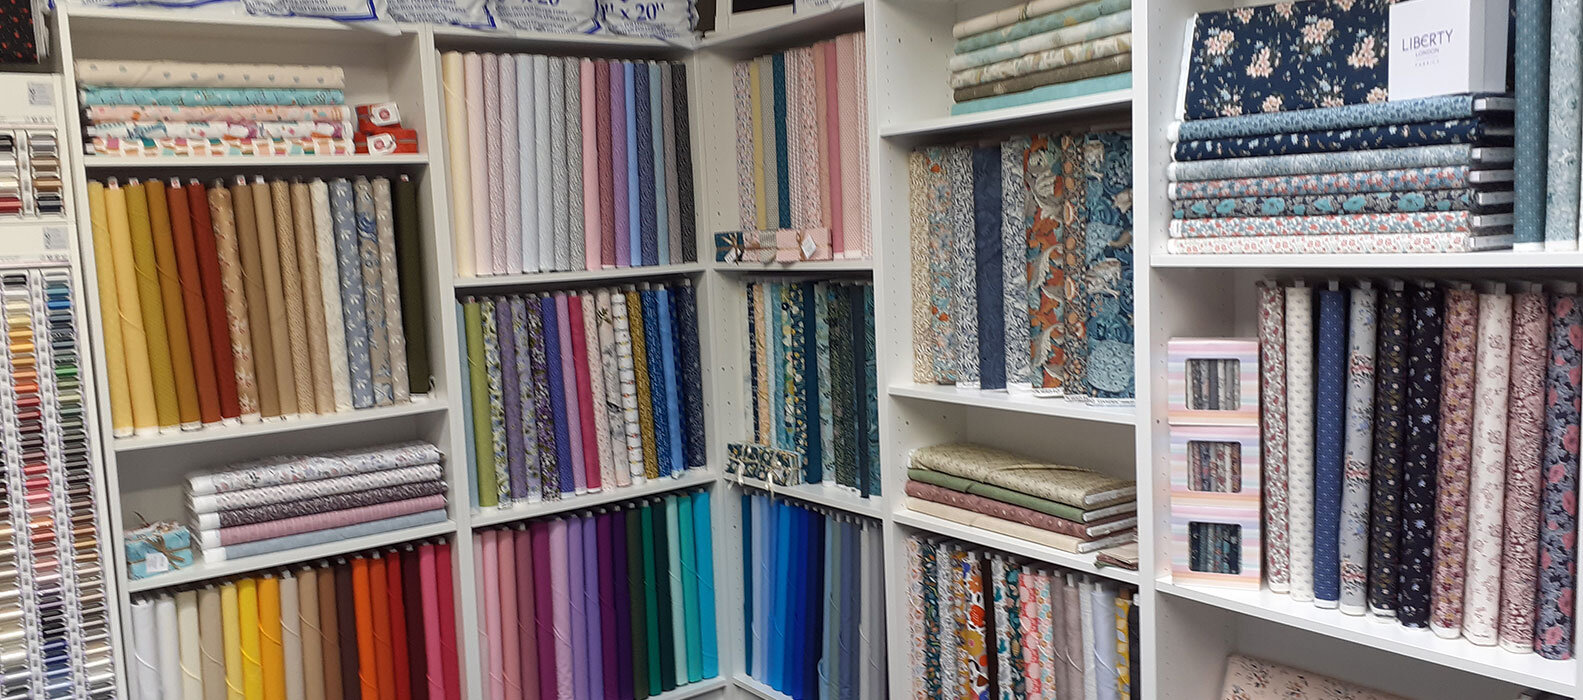 quilting fabric shop in county durham